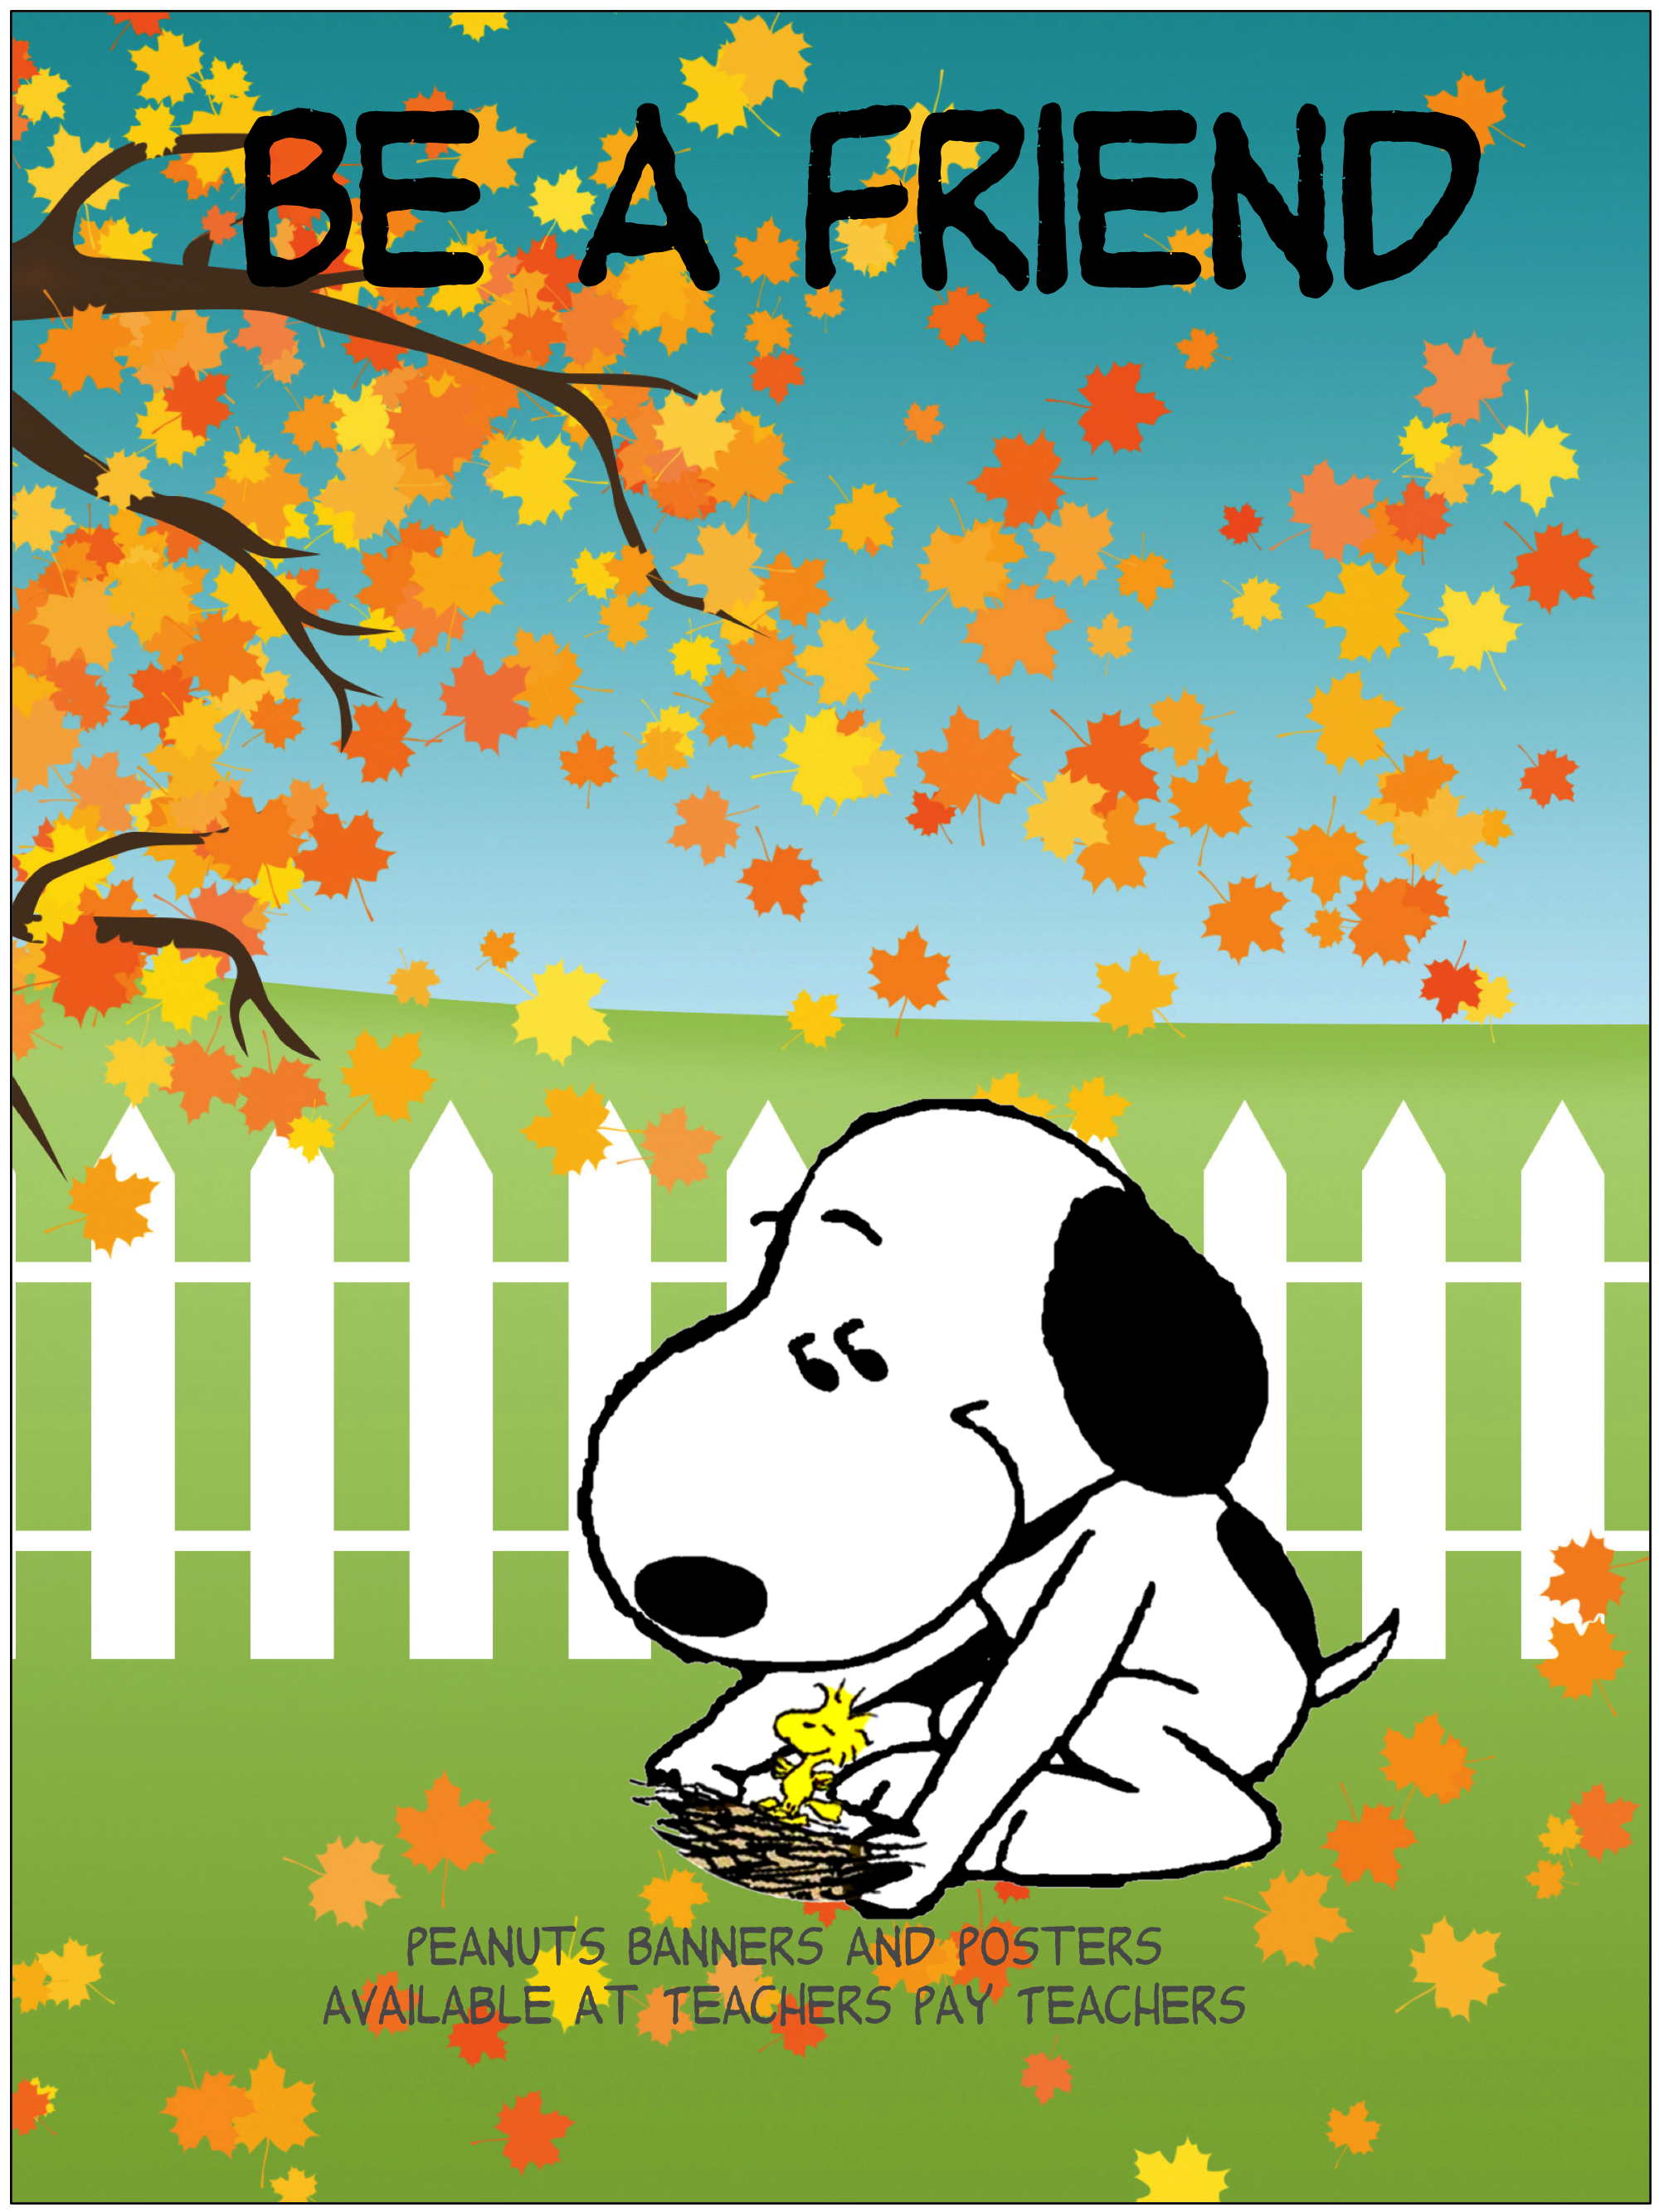 Be Kind Snoopy Poster For The Classroom